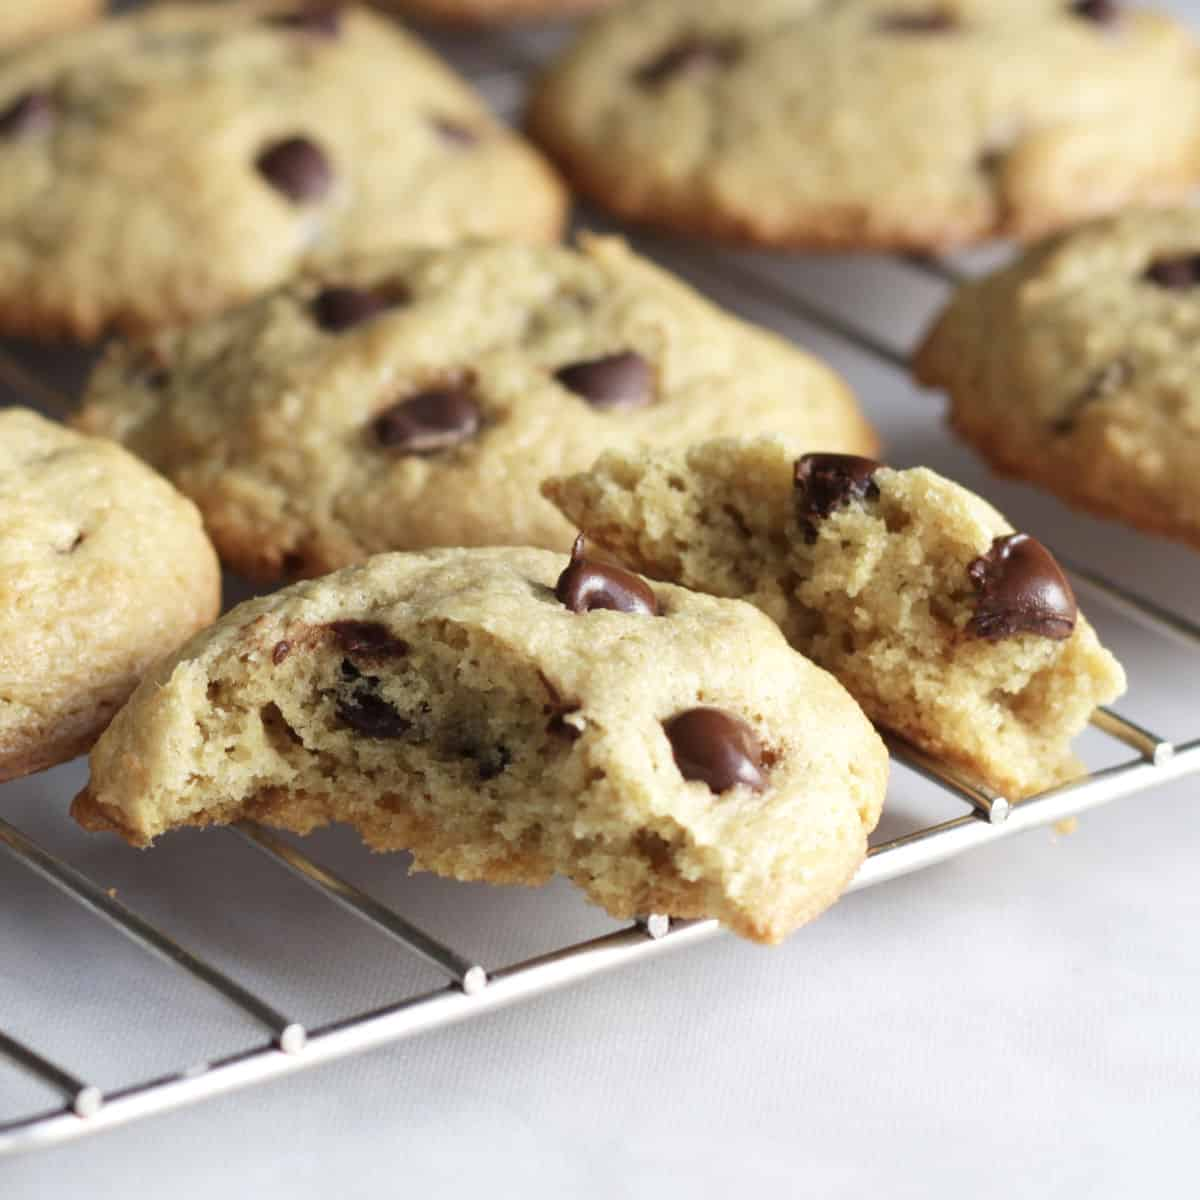 chocolate chip cookies cooling on a wire rack with one cookie broken open